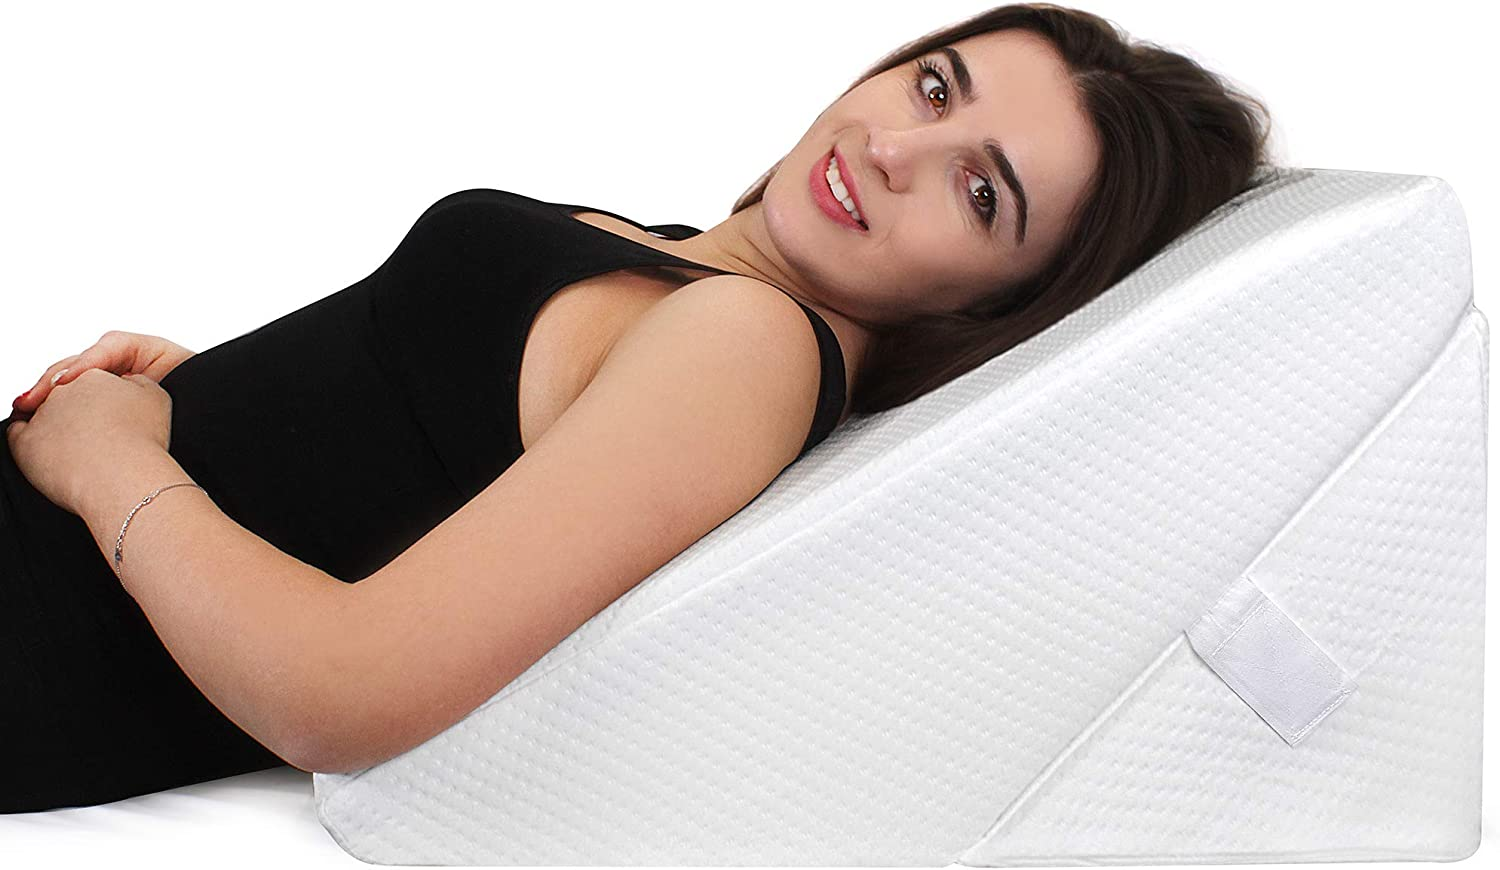 bed wedge pillow - Cooling Gel Memory Foam Top, Adjustable 9&12 inch Folding Incline Cushion, for Legs and Back Support Pillow, Acid Reflux, Heartburn, Allergies, Snoring, Reading- Soft Washable Cover